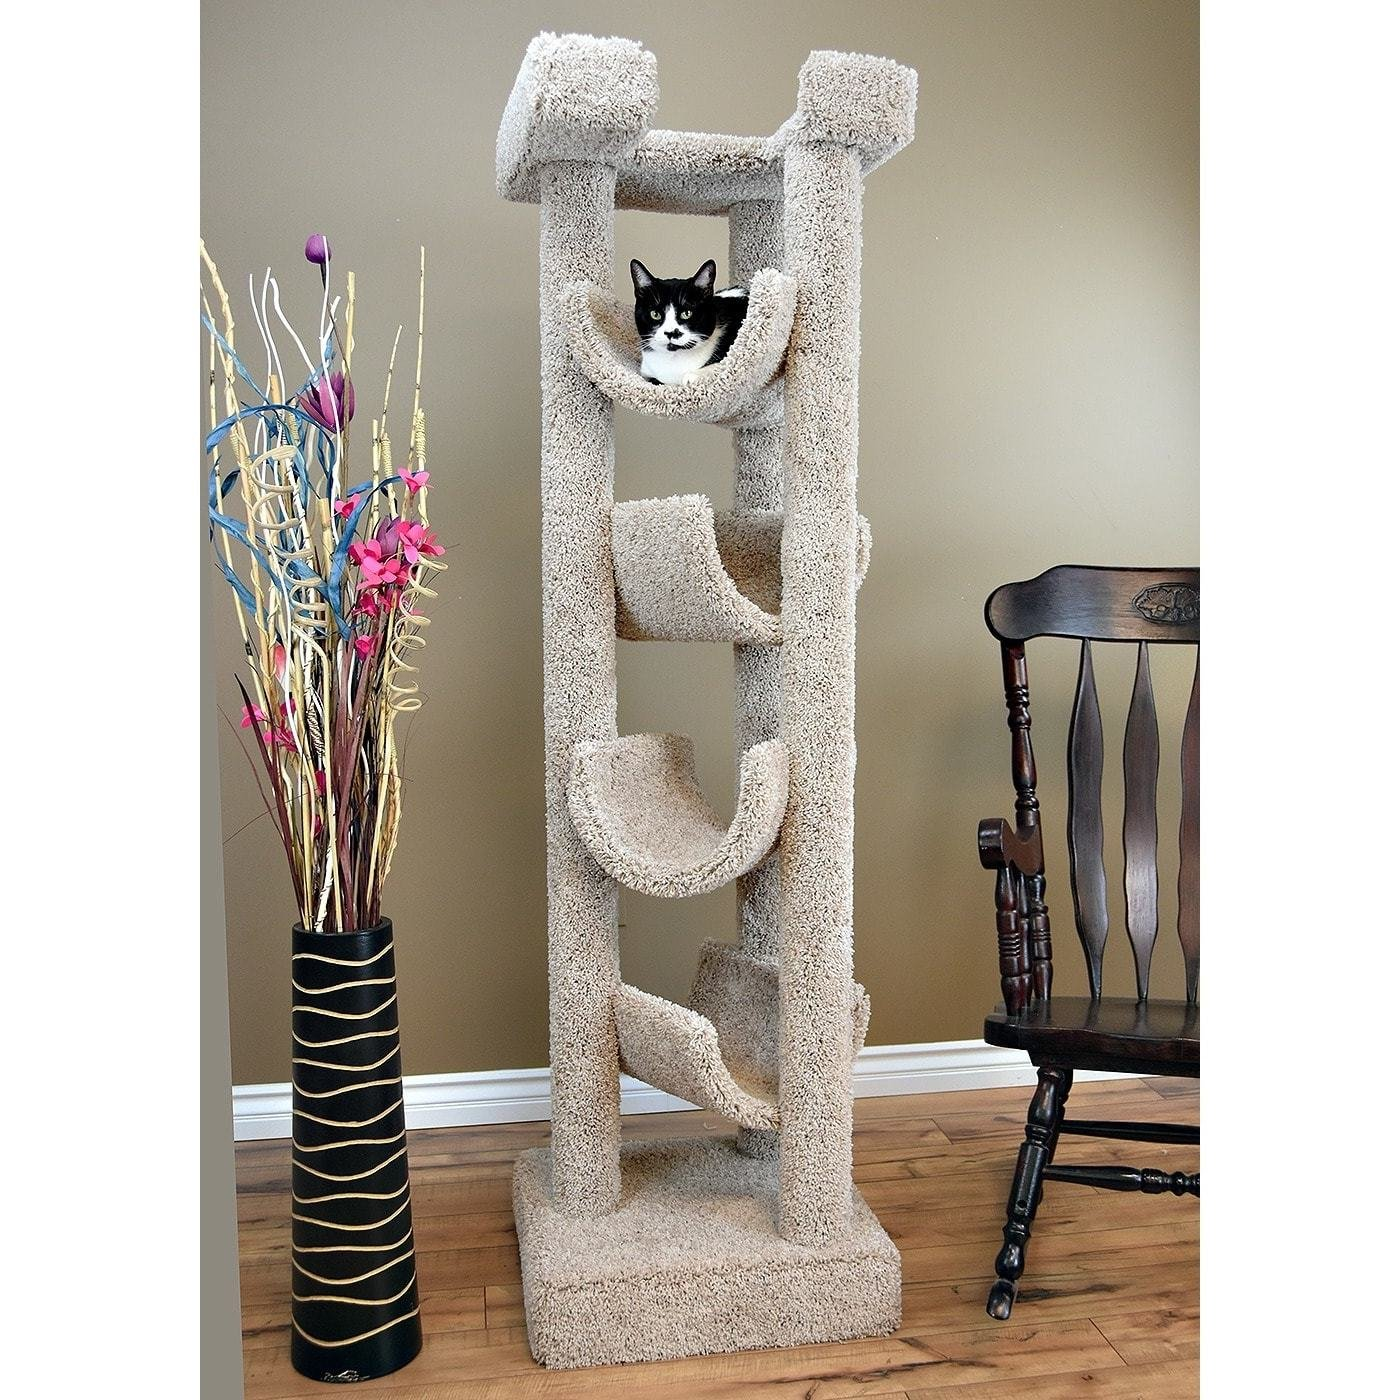 1 Piece Beige 72 Inches High Skyscraper Scratcher Cat Condo, Brown Pet Tree Perch Bed Kitty Tower House, Durable Four Cradles Elevated Stable Prevent Tipping Stationary, Carpet Sisal Rope Wood